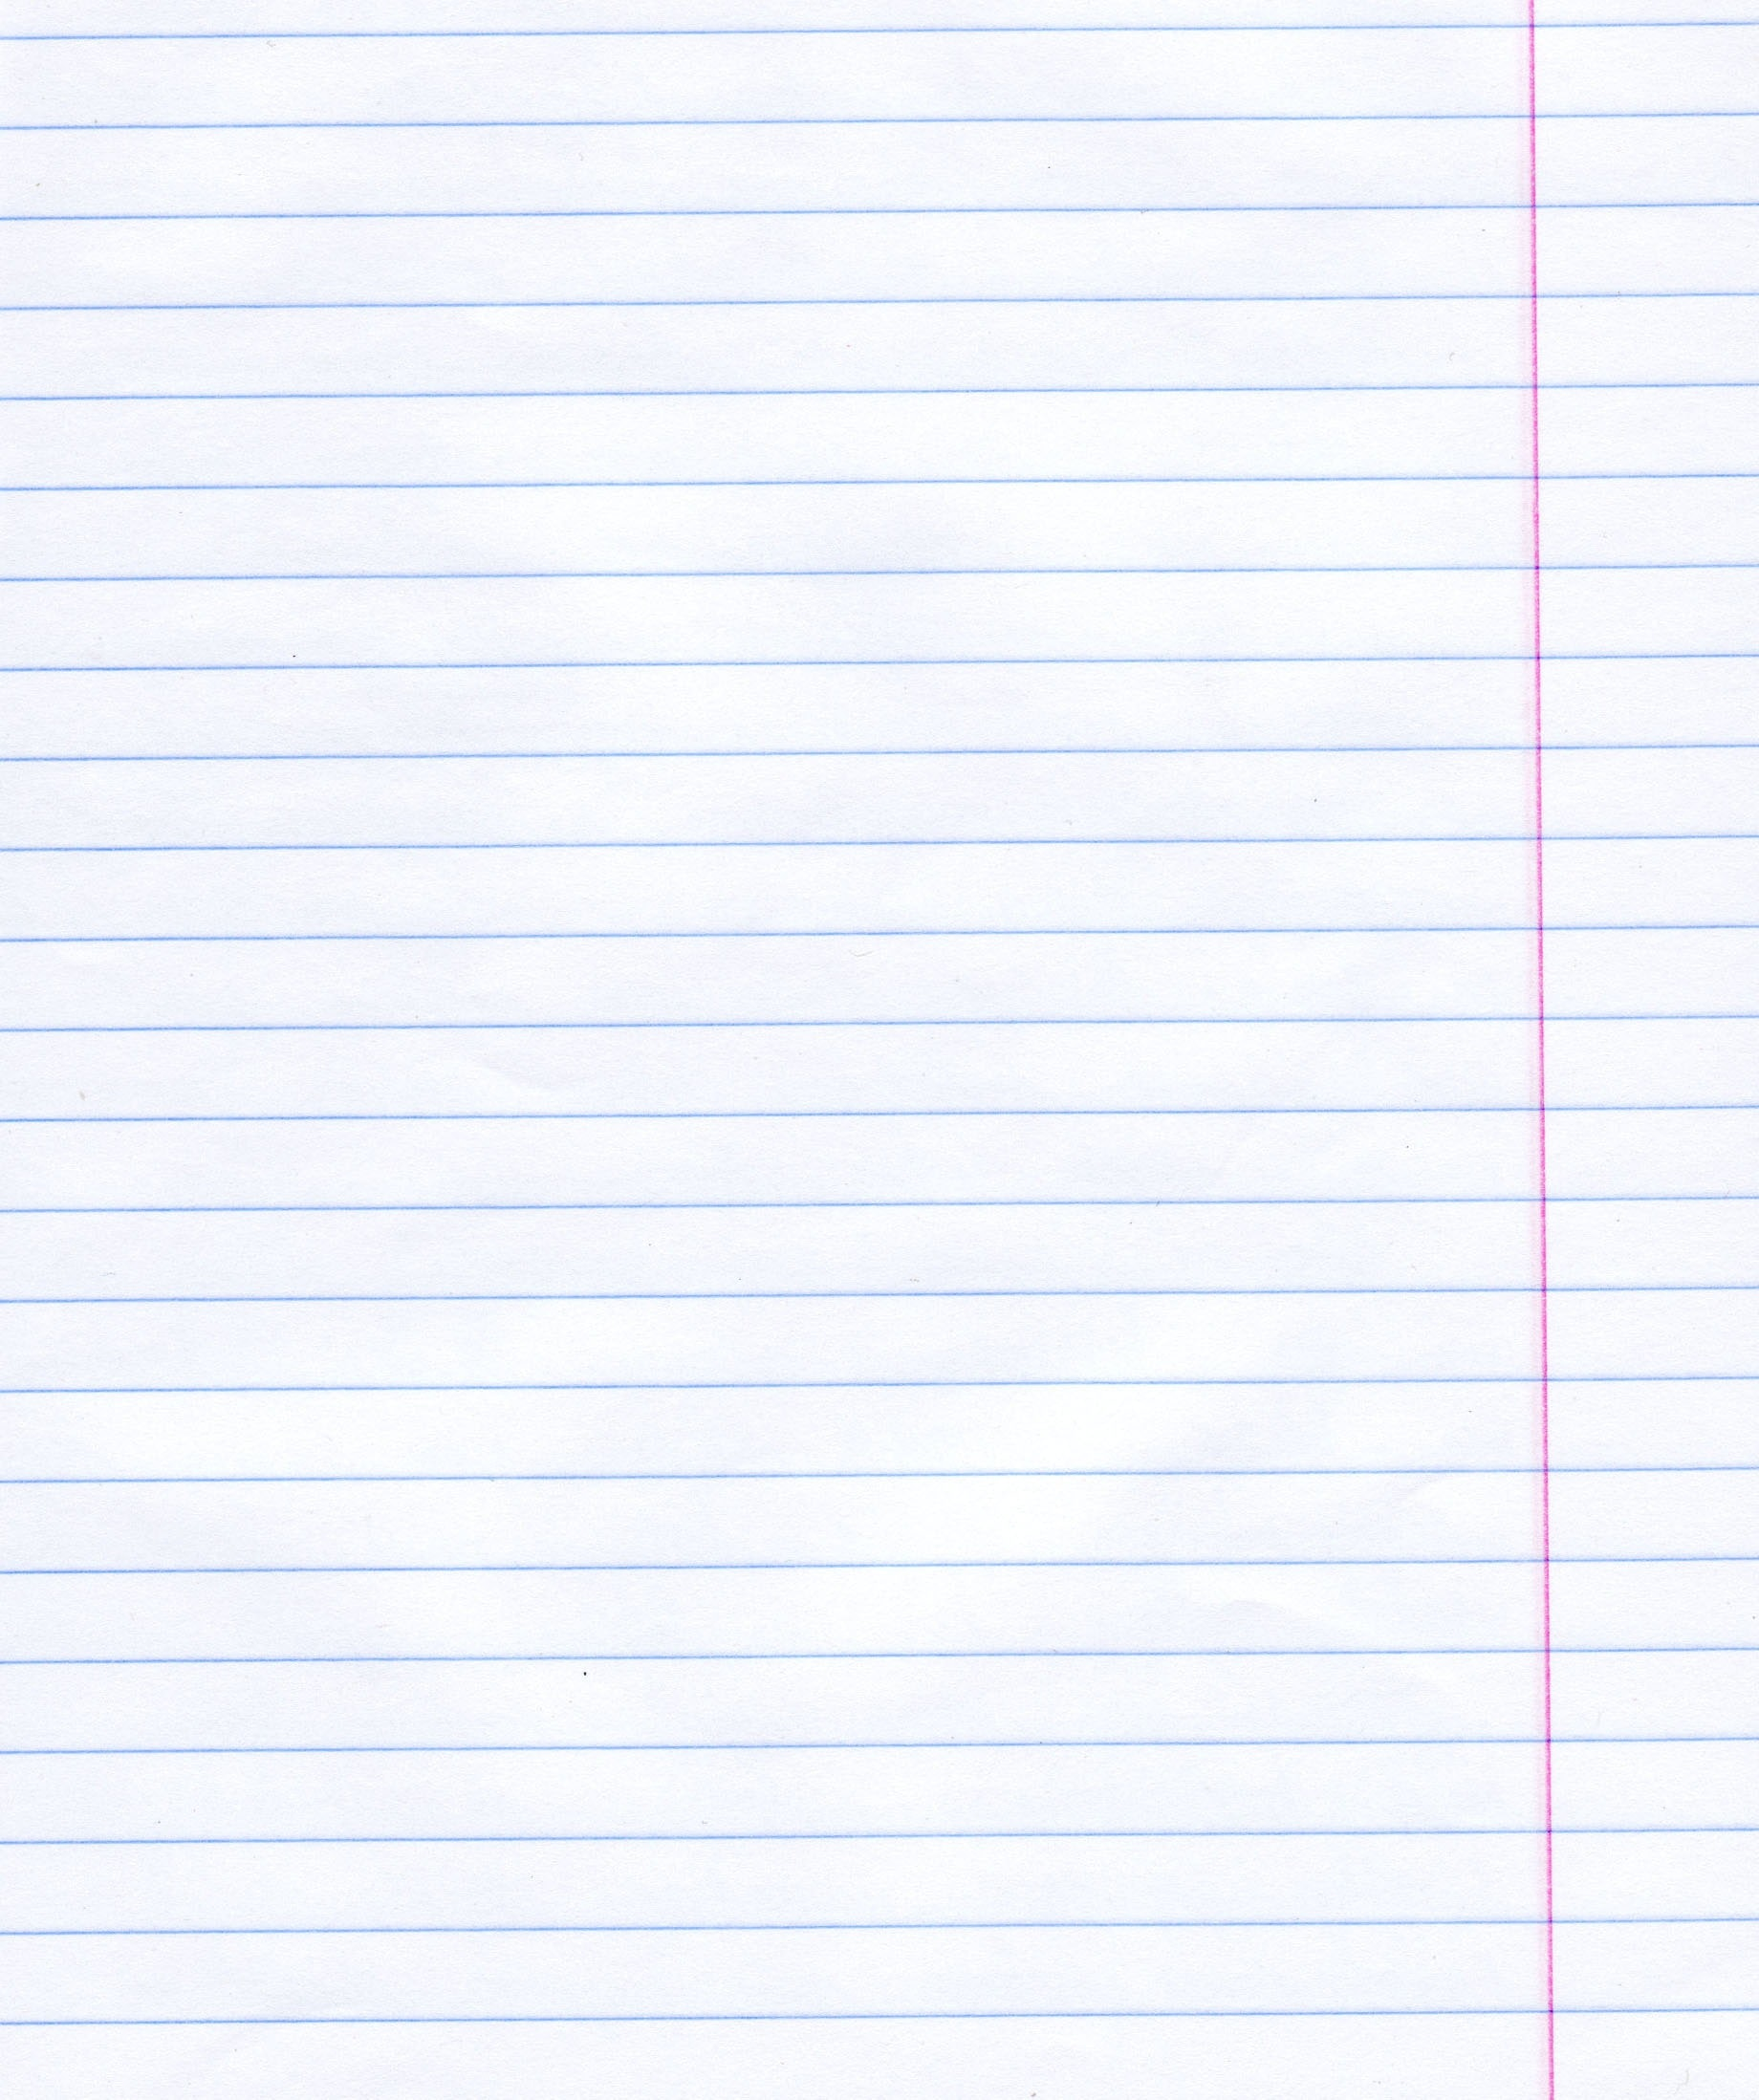 Free Stock Photo Of Lines Notebook Paper Page